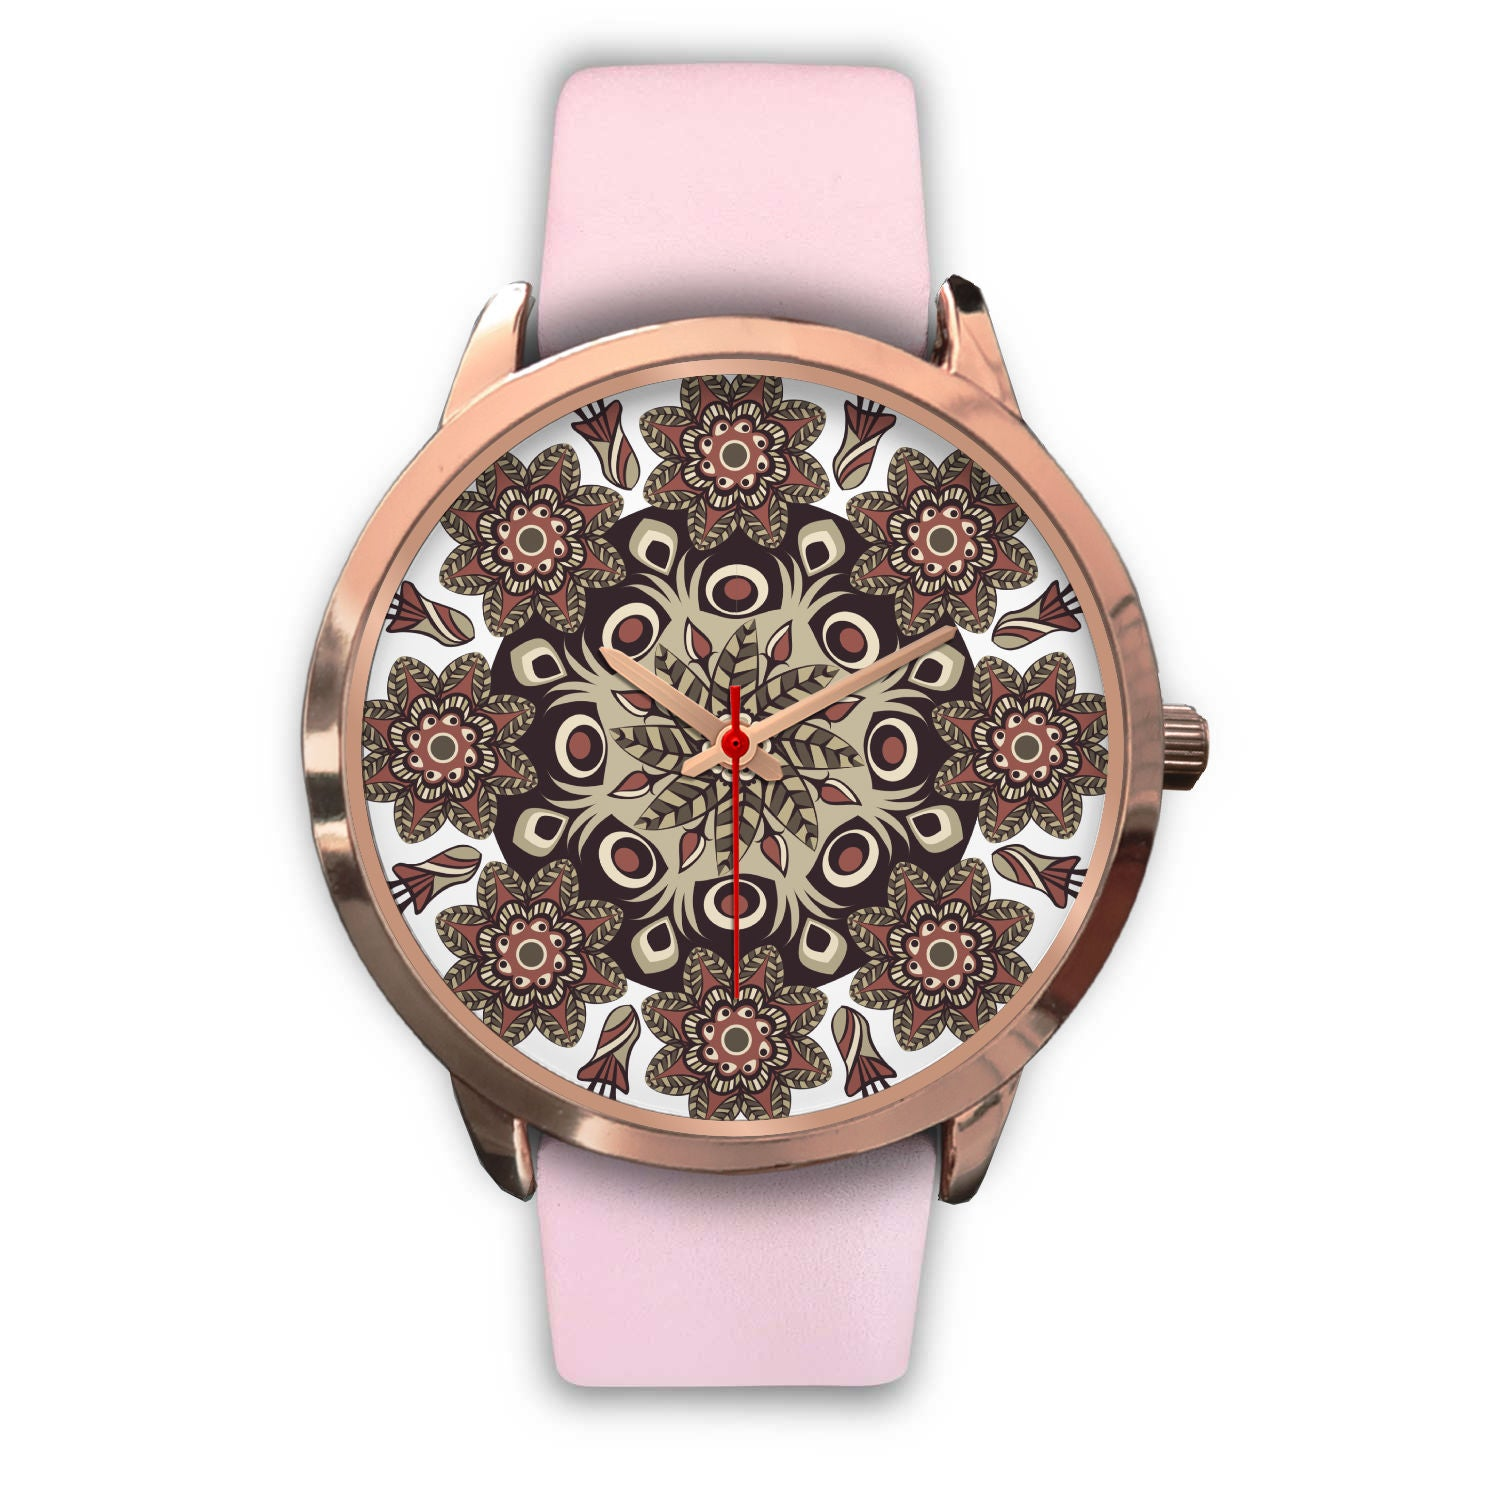 Floral inspired Rose Gold Watch - Hifza Apparel